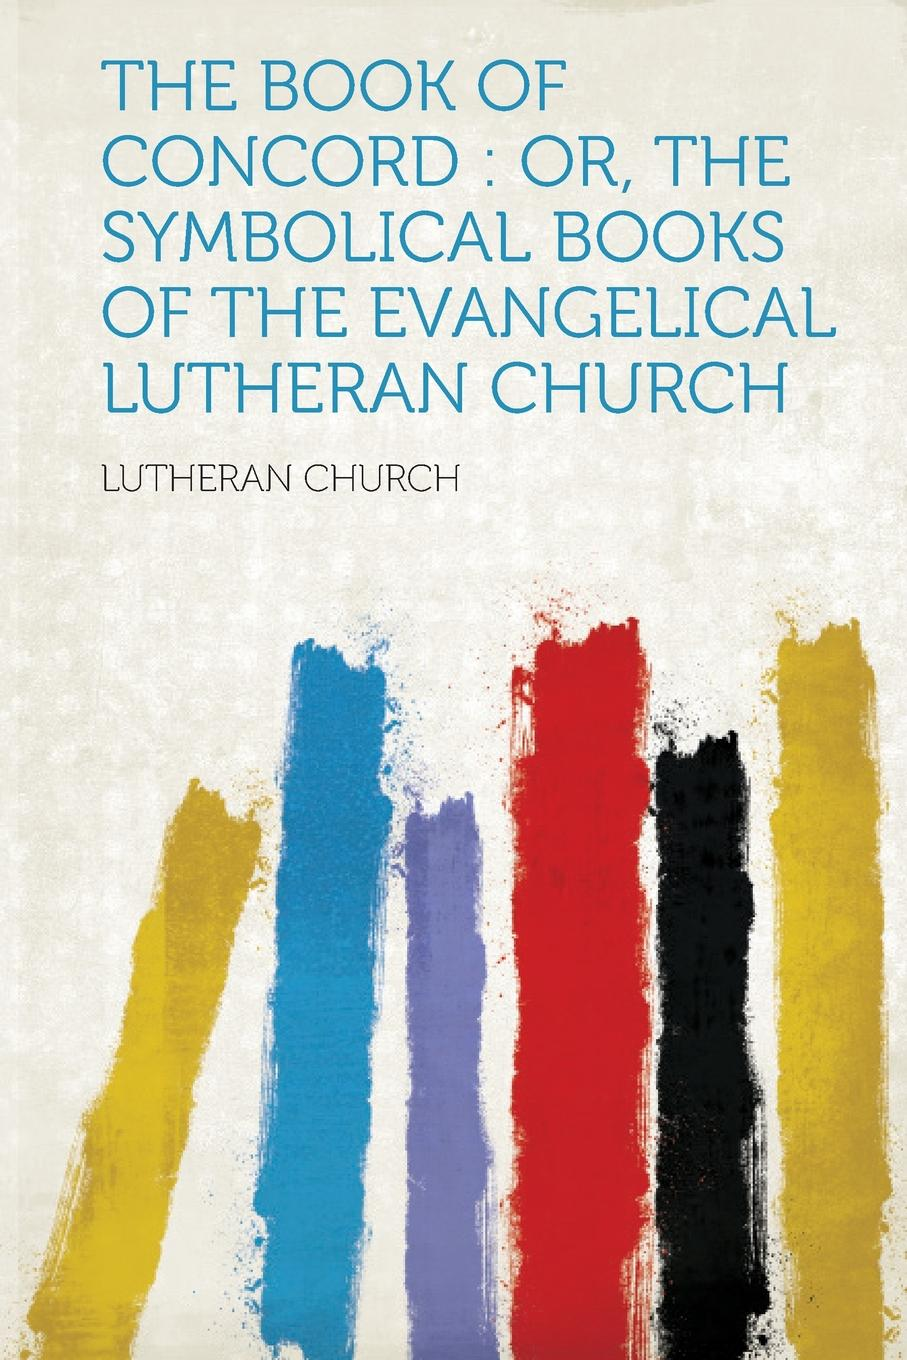 The Book of Concord. Or, the Symbolical Books of the Evangelical Lutheran Church bente friedrich historical introductions to the symbolical books of the evangelical lutheran church